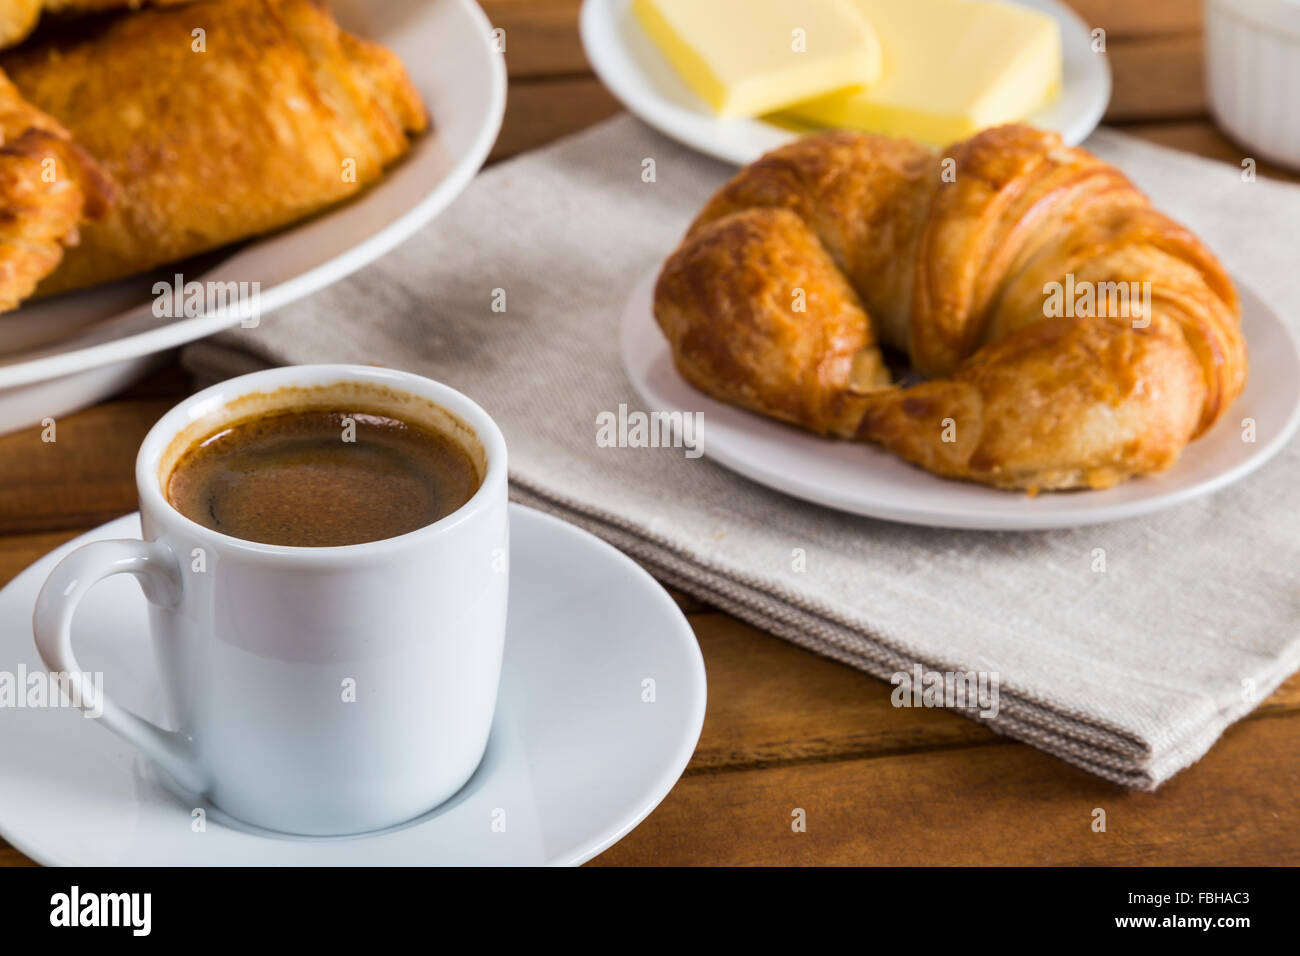 Coffee and croissants breakfast - Stock Image